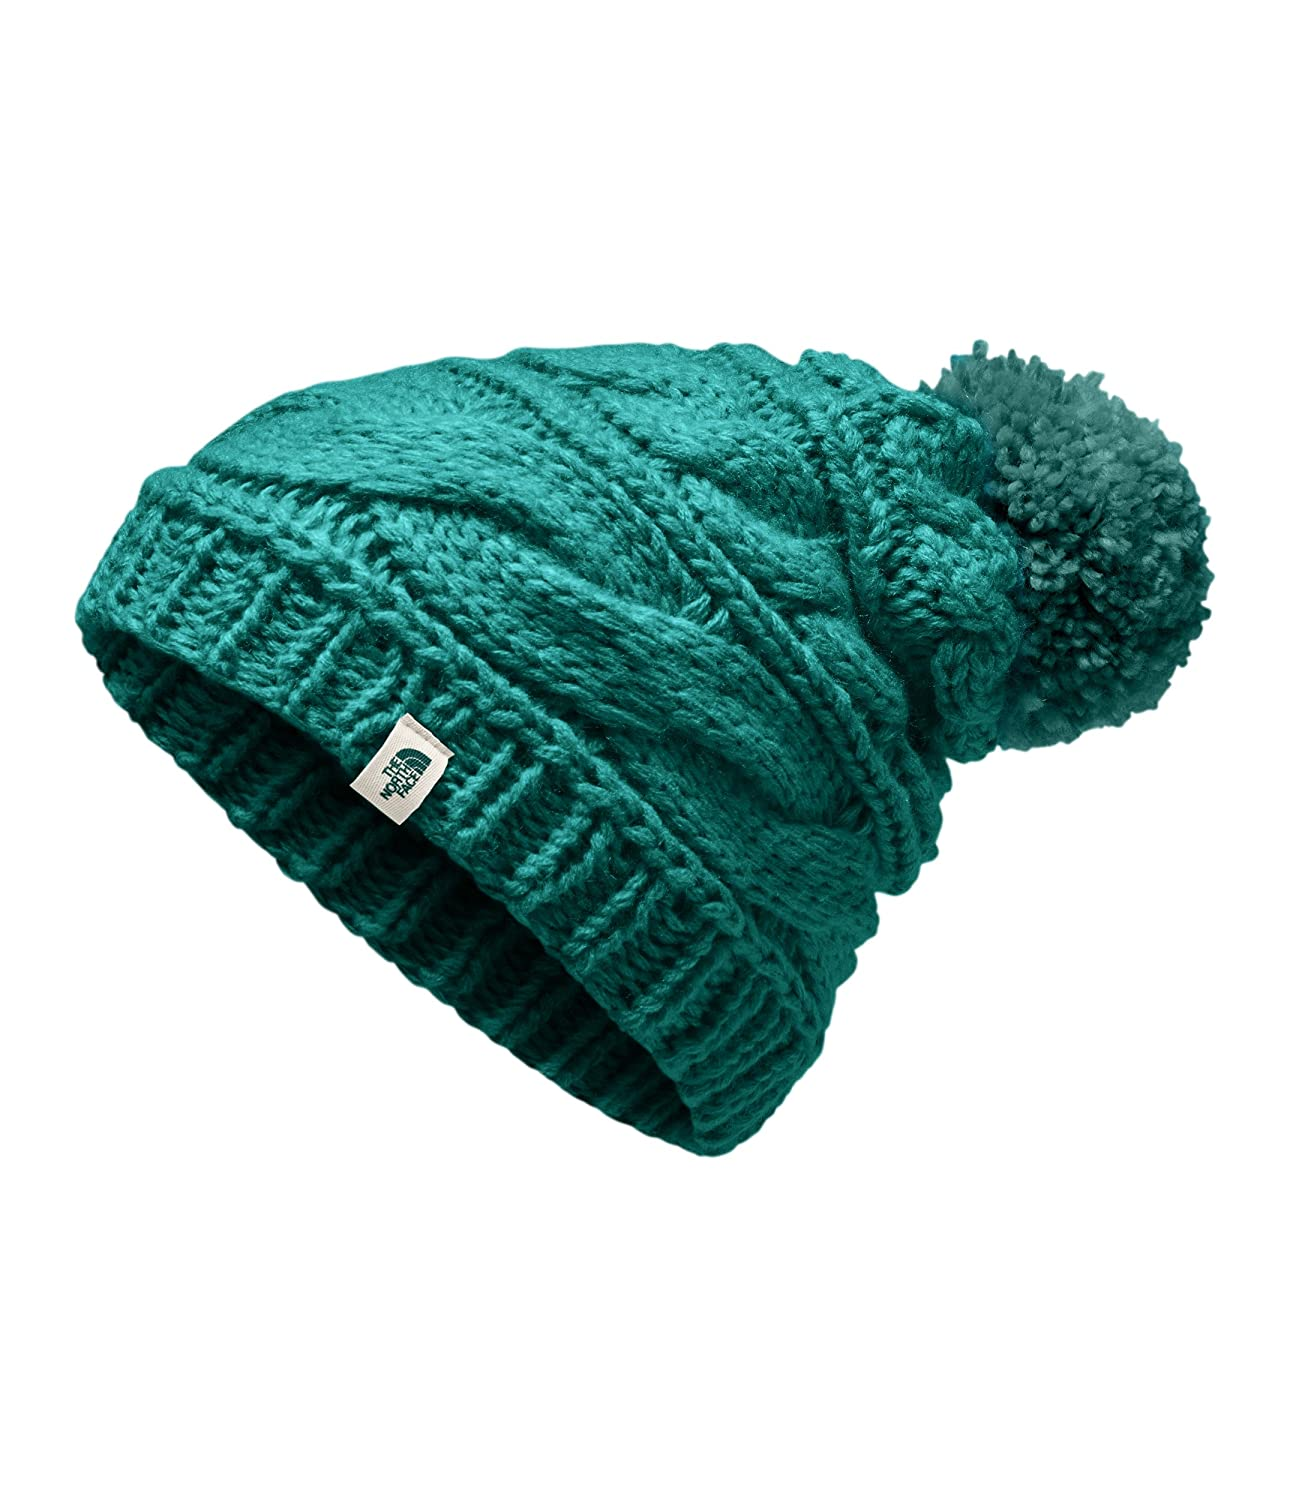 The North Face Women s Triple Cable Beanie - Everglade - OS at Amazon  Women s Clothing store  359bf386975